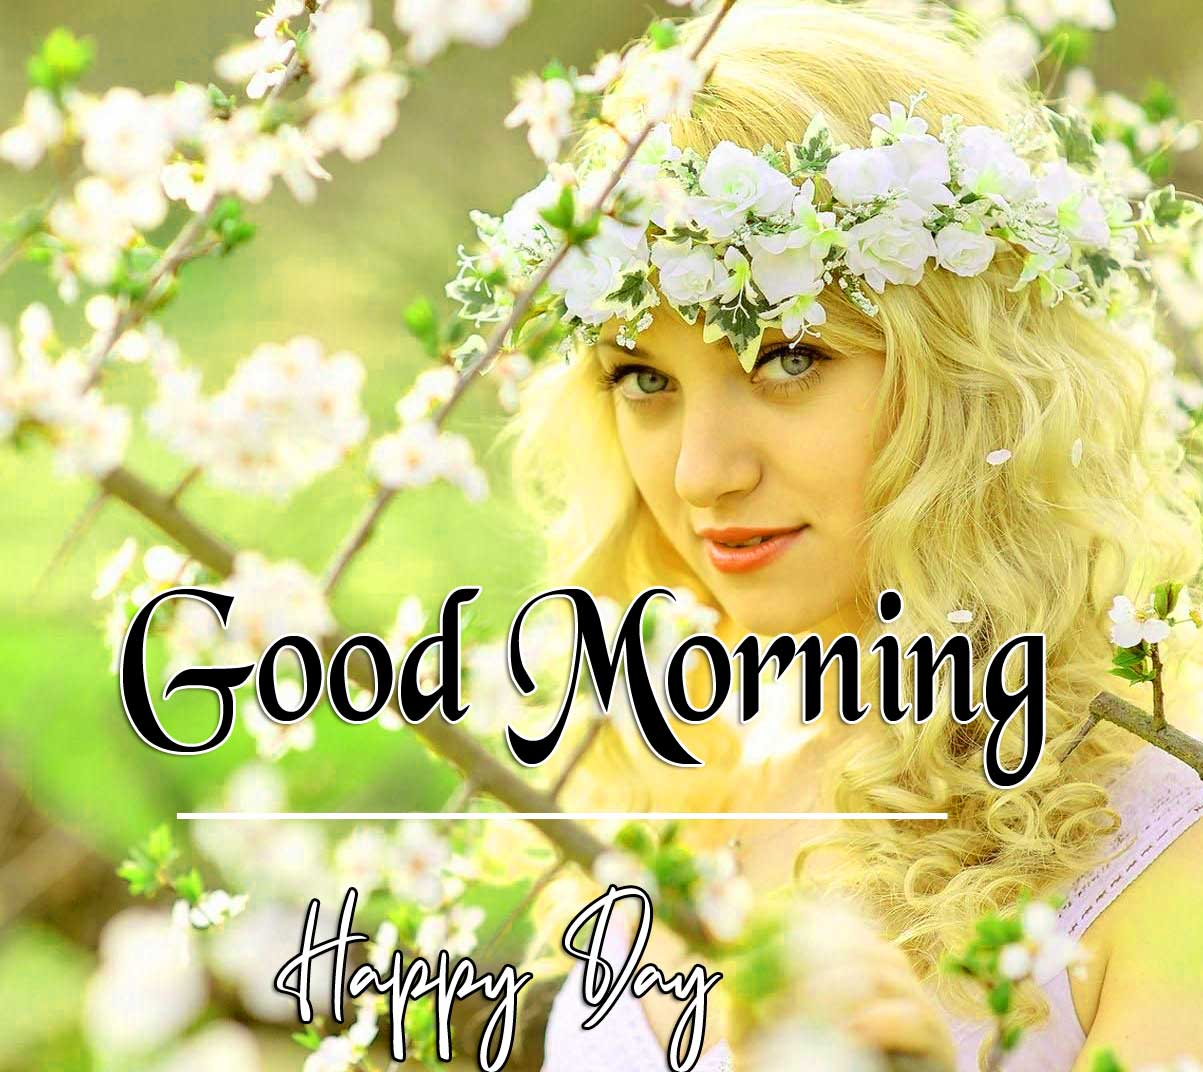 Beautiful Girl Good Morning Images 2